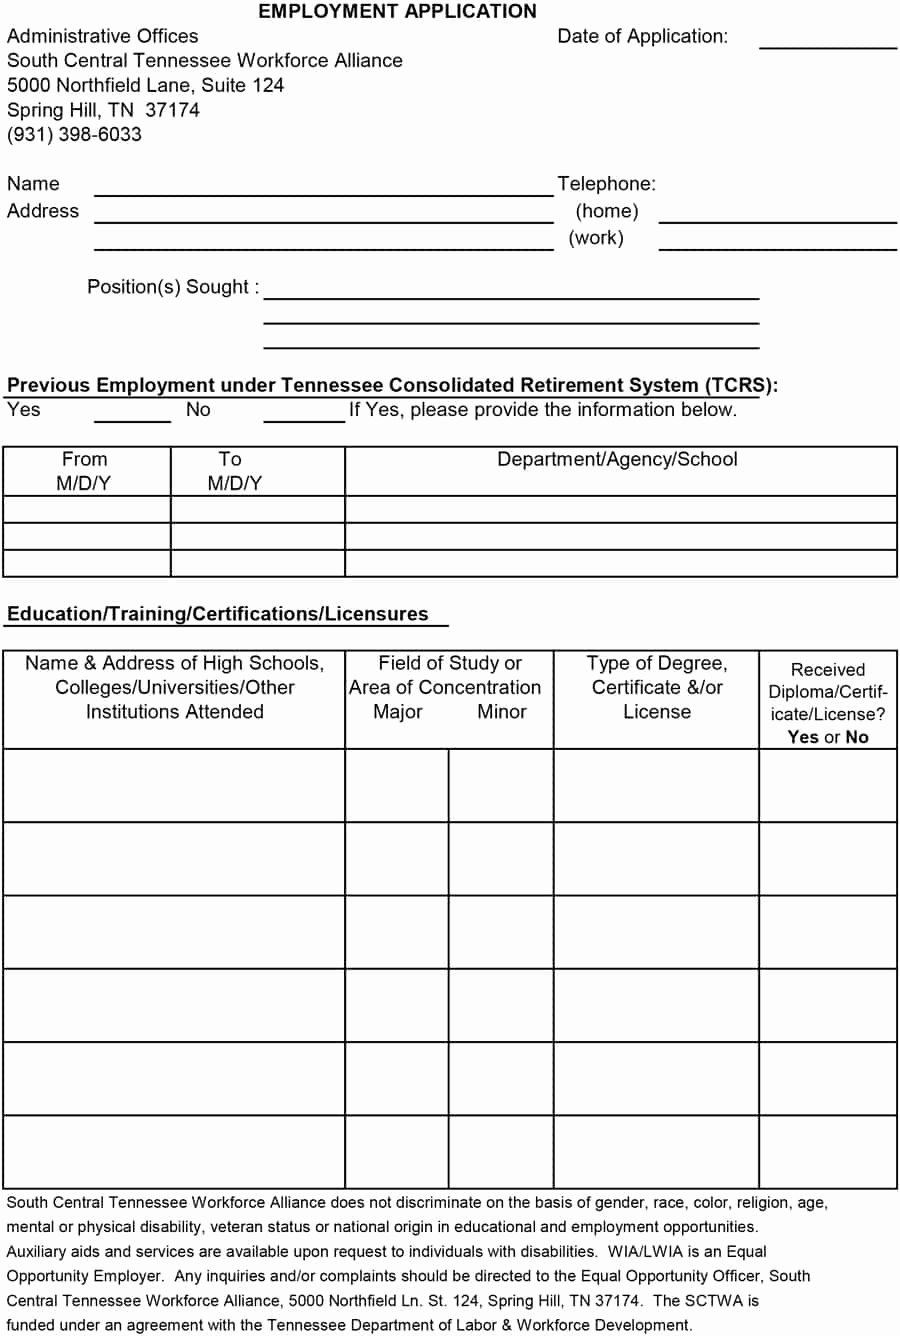 Employment Application form Template Lovely 50 Free Employment Job Application form Templates